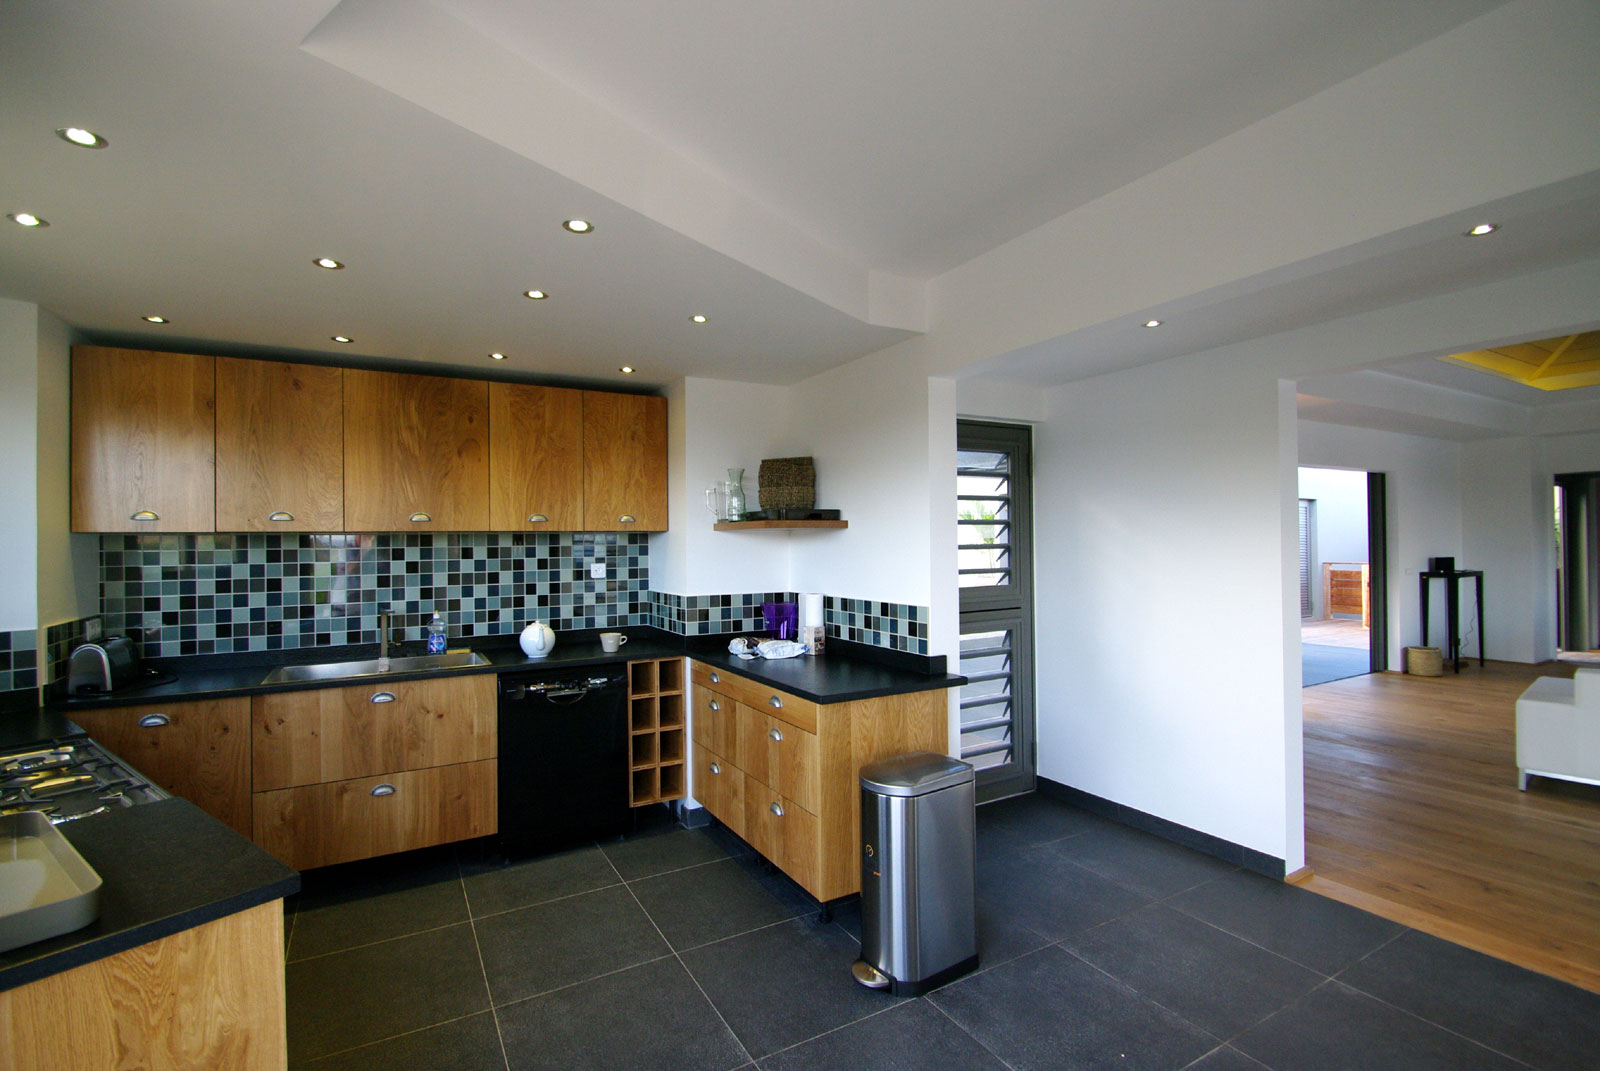 The modern and fully equipped kitchen of this St. Barts luxury villa rental.